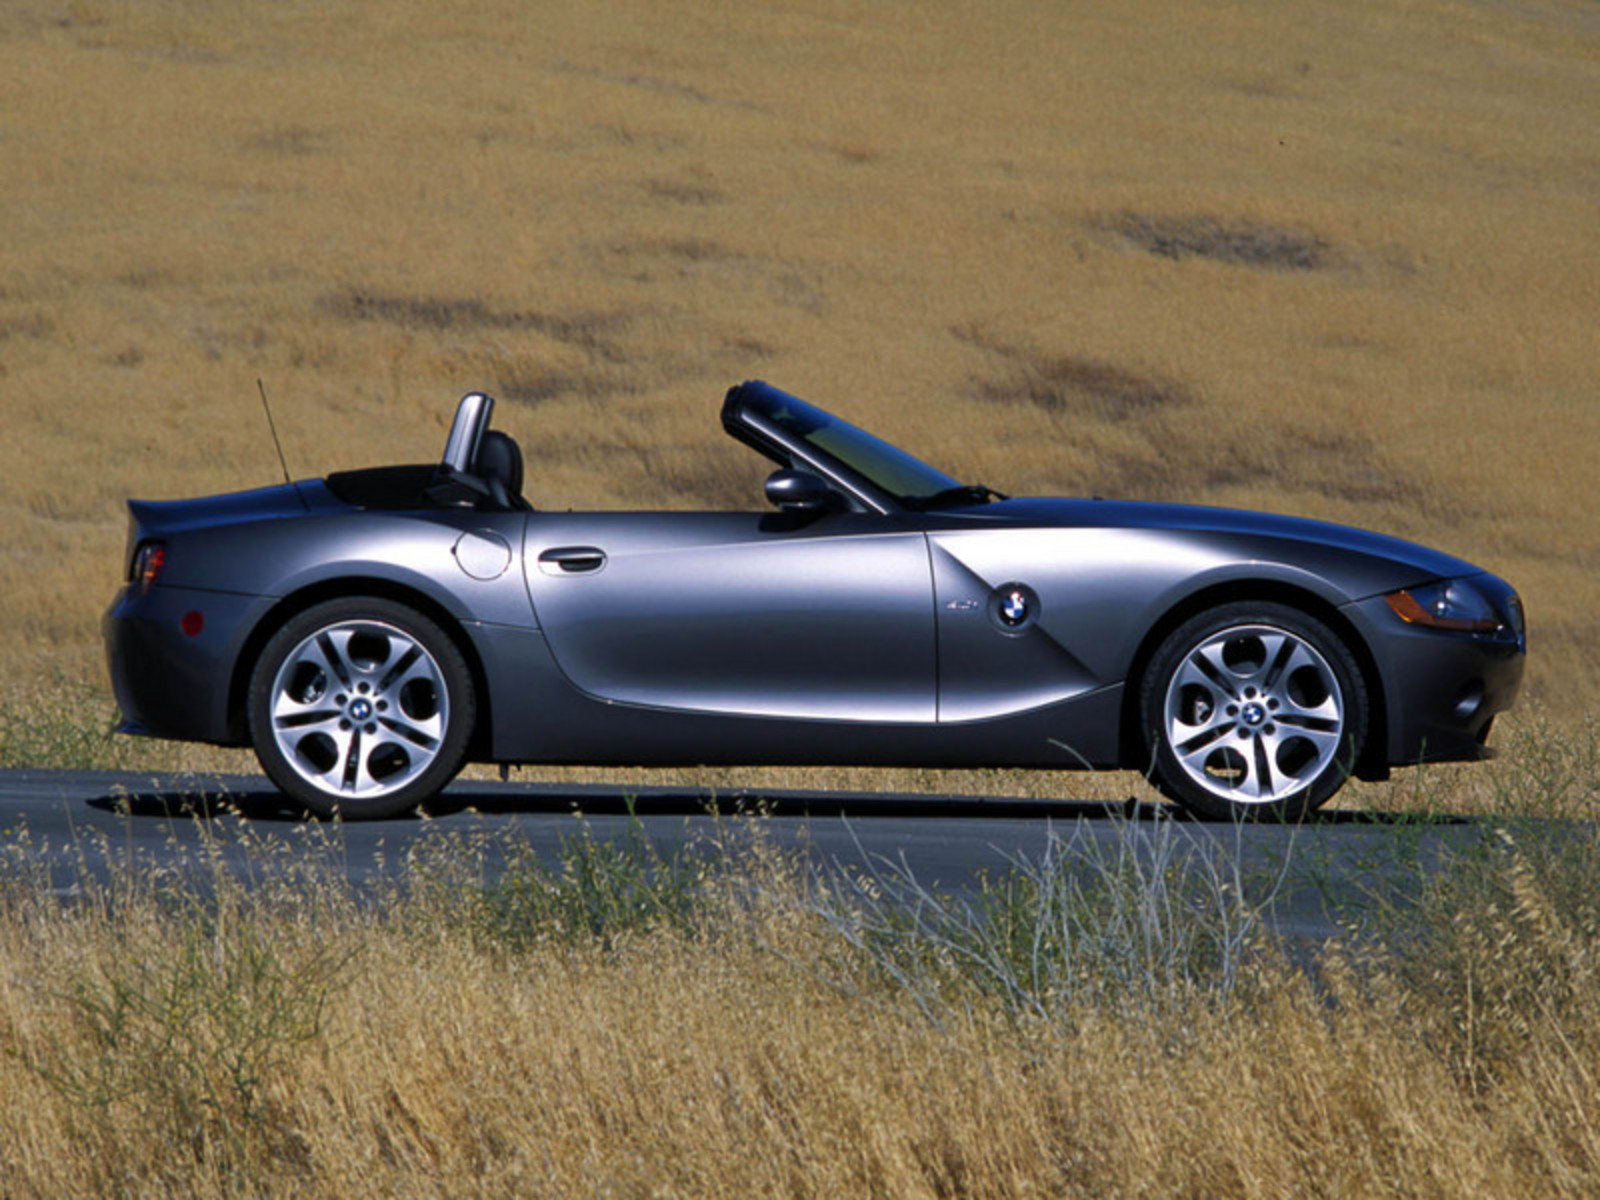 2003 bmw z4 picture 31253 car review top speed for 2003 bmw z4 window regulator